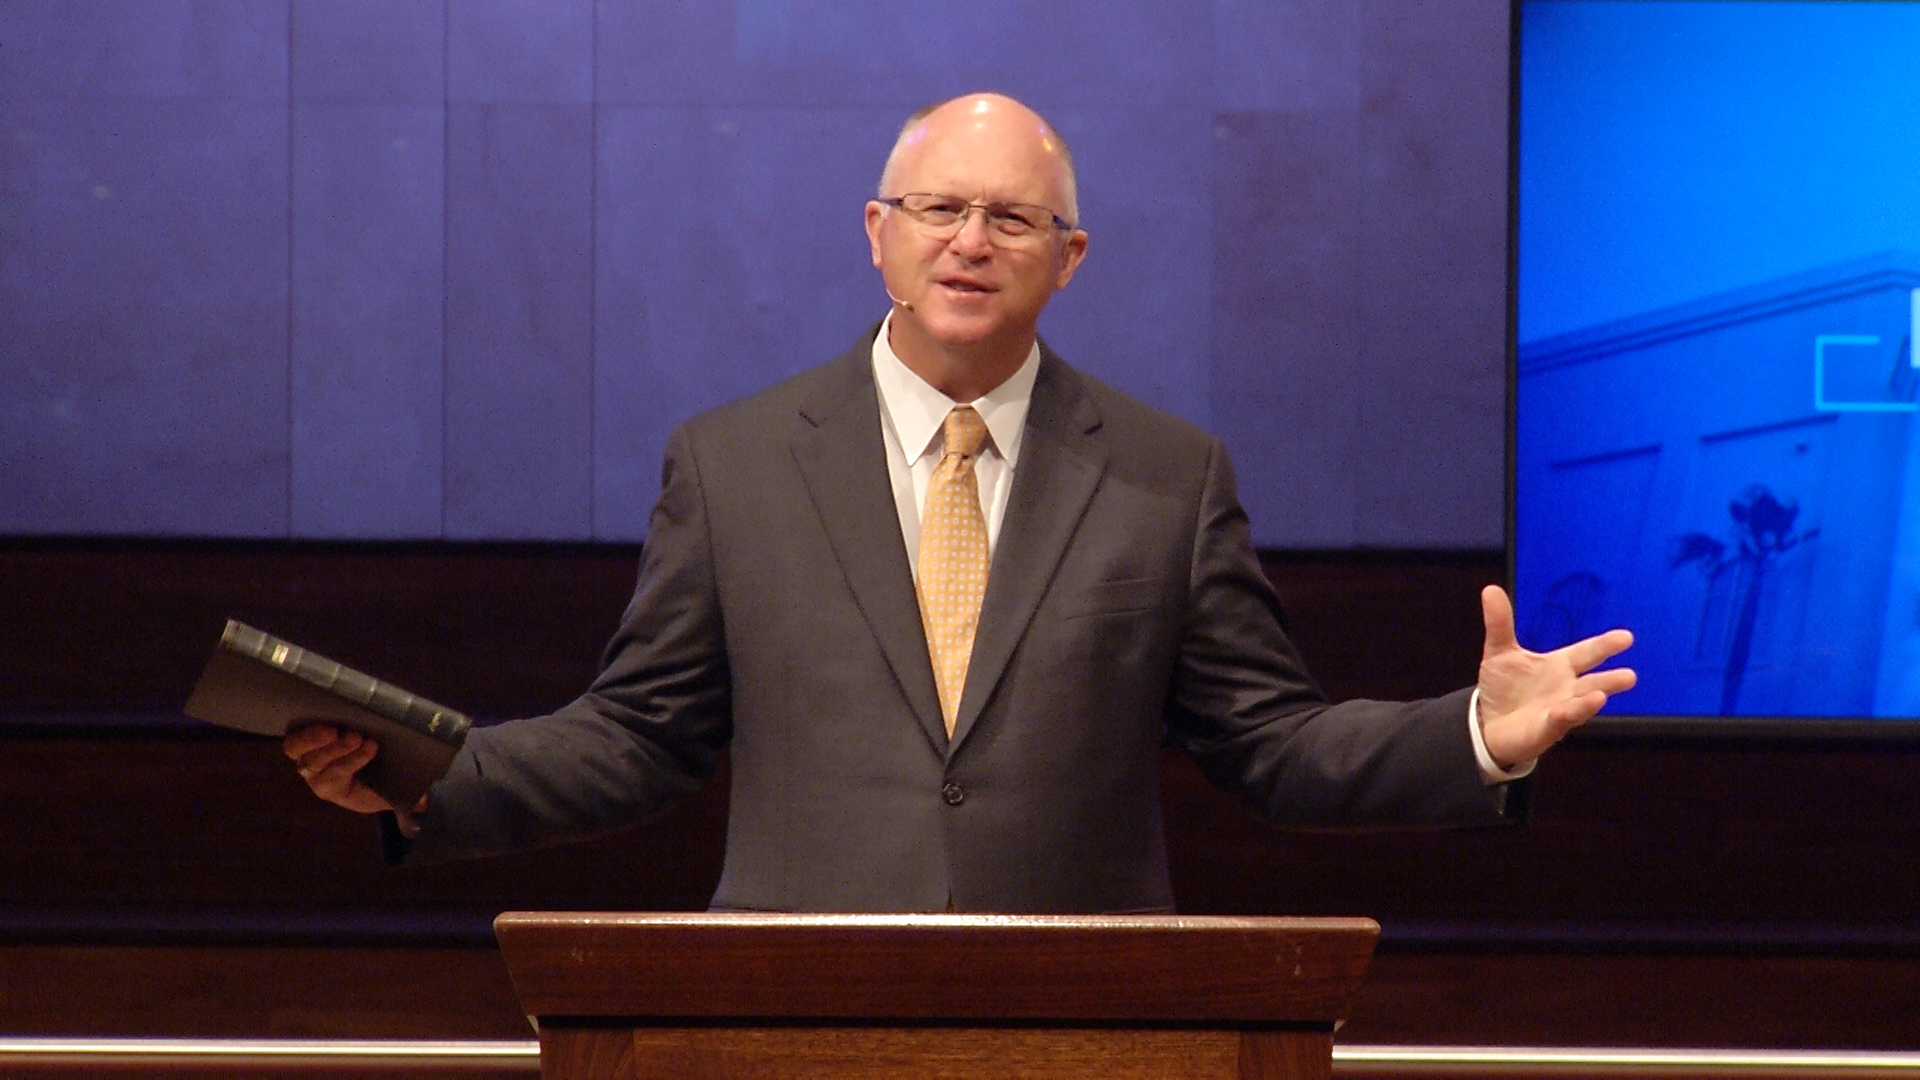 Pastor Paul Chappell: The Gospel Manifested Through Us